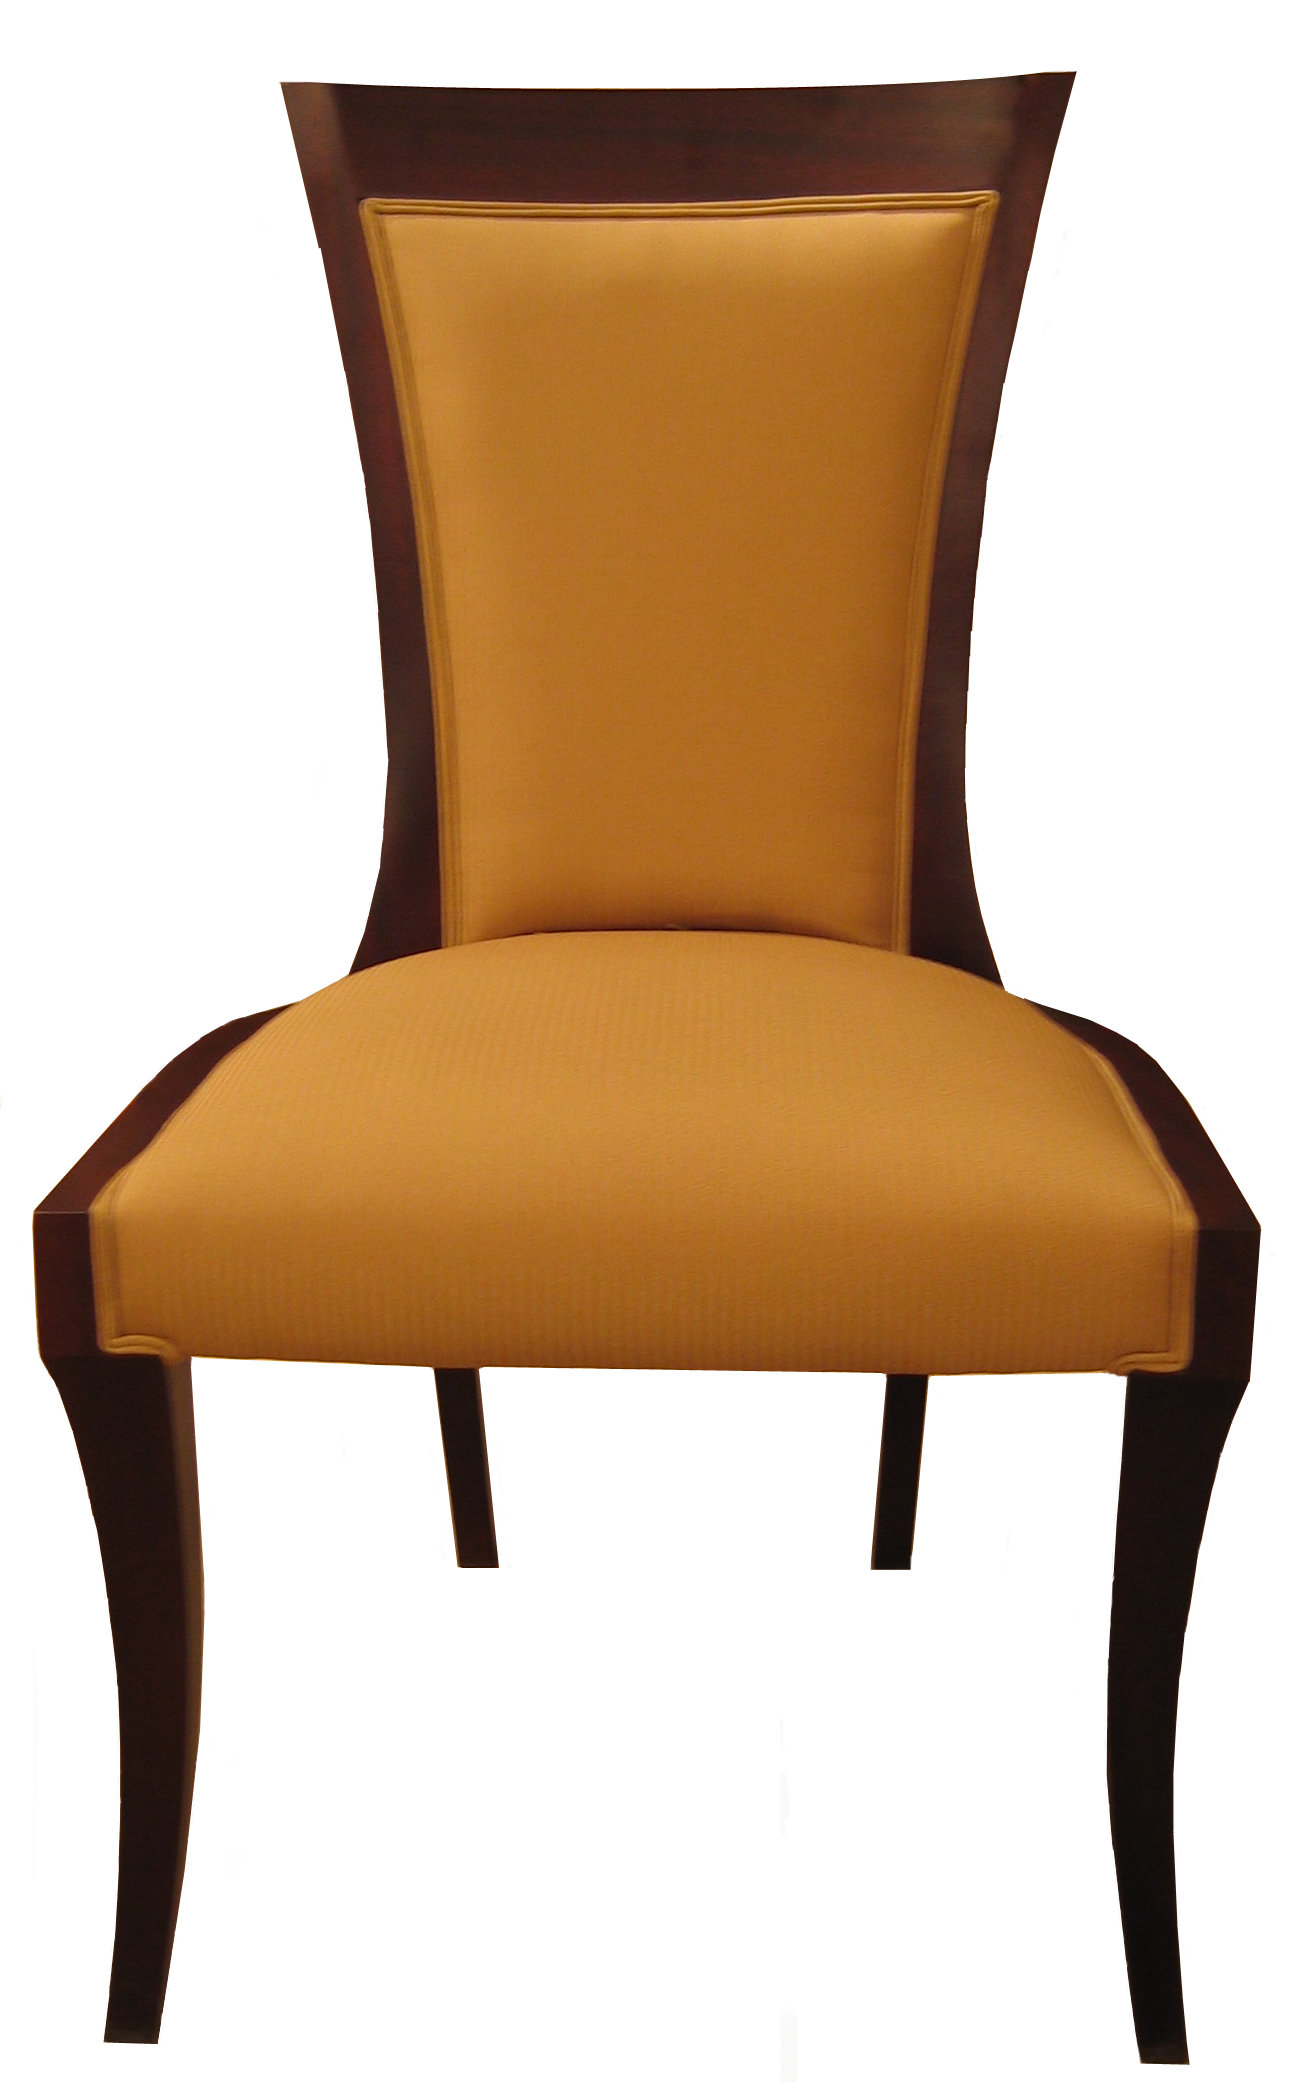 Remarkable Dining Chair Modern Design 1291 x 2082 · 775 kB · jpeg